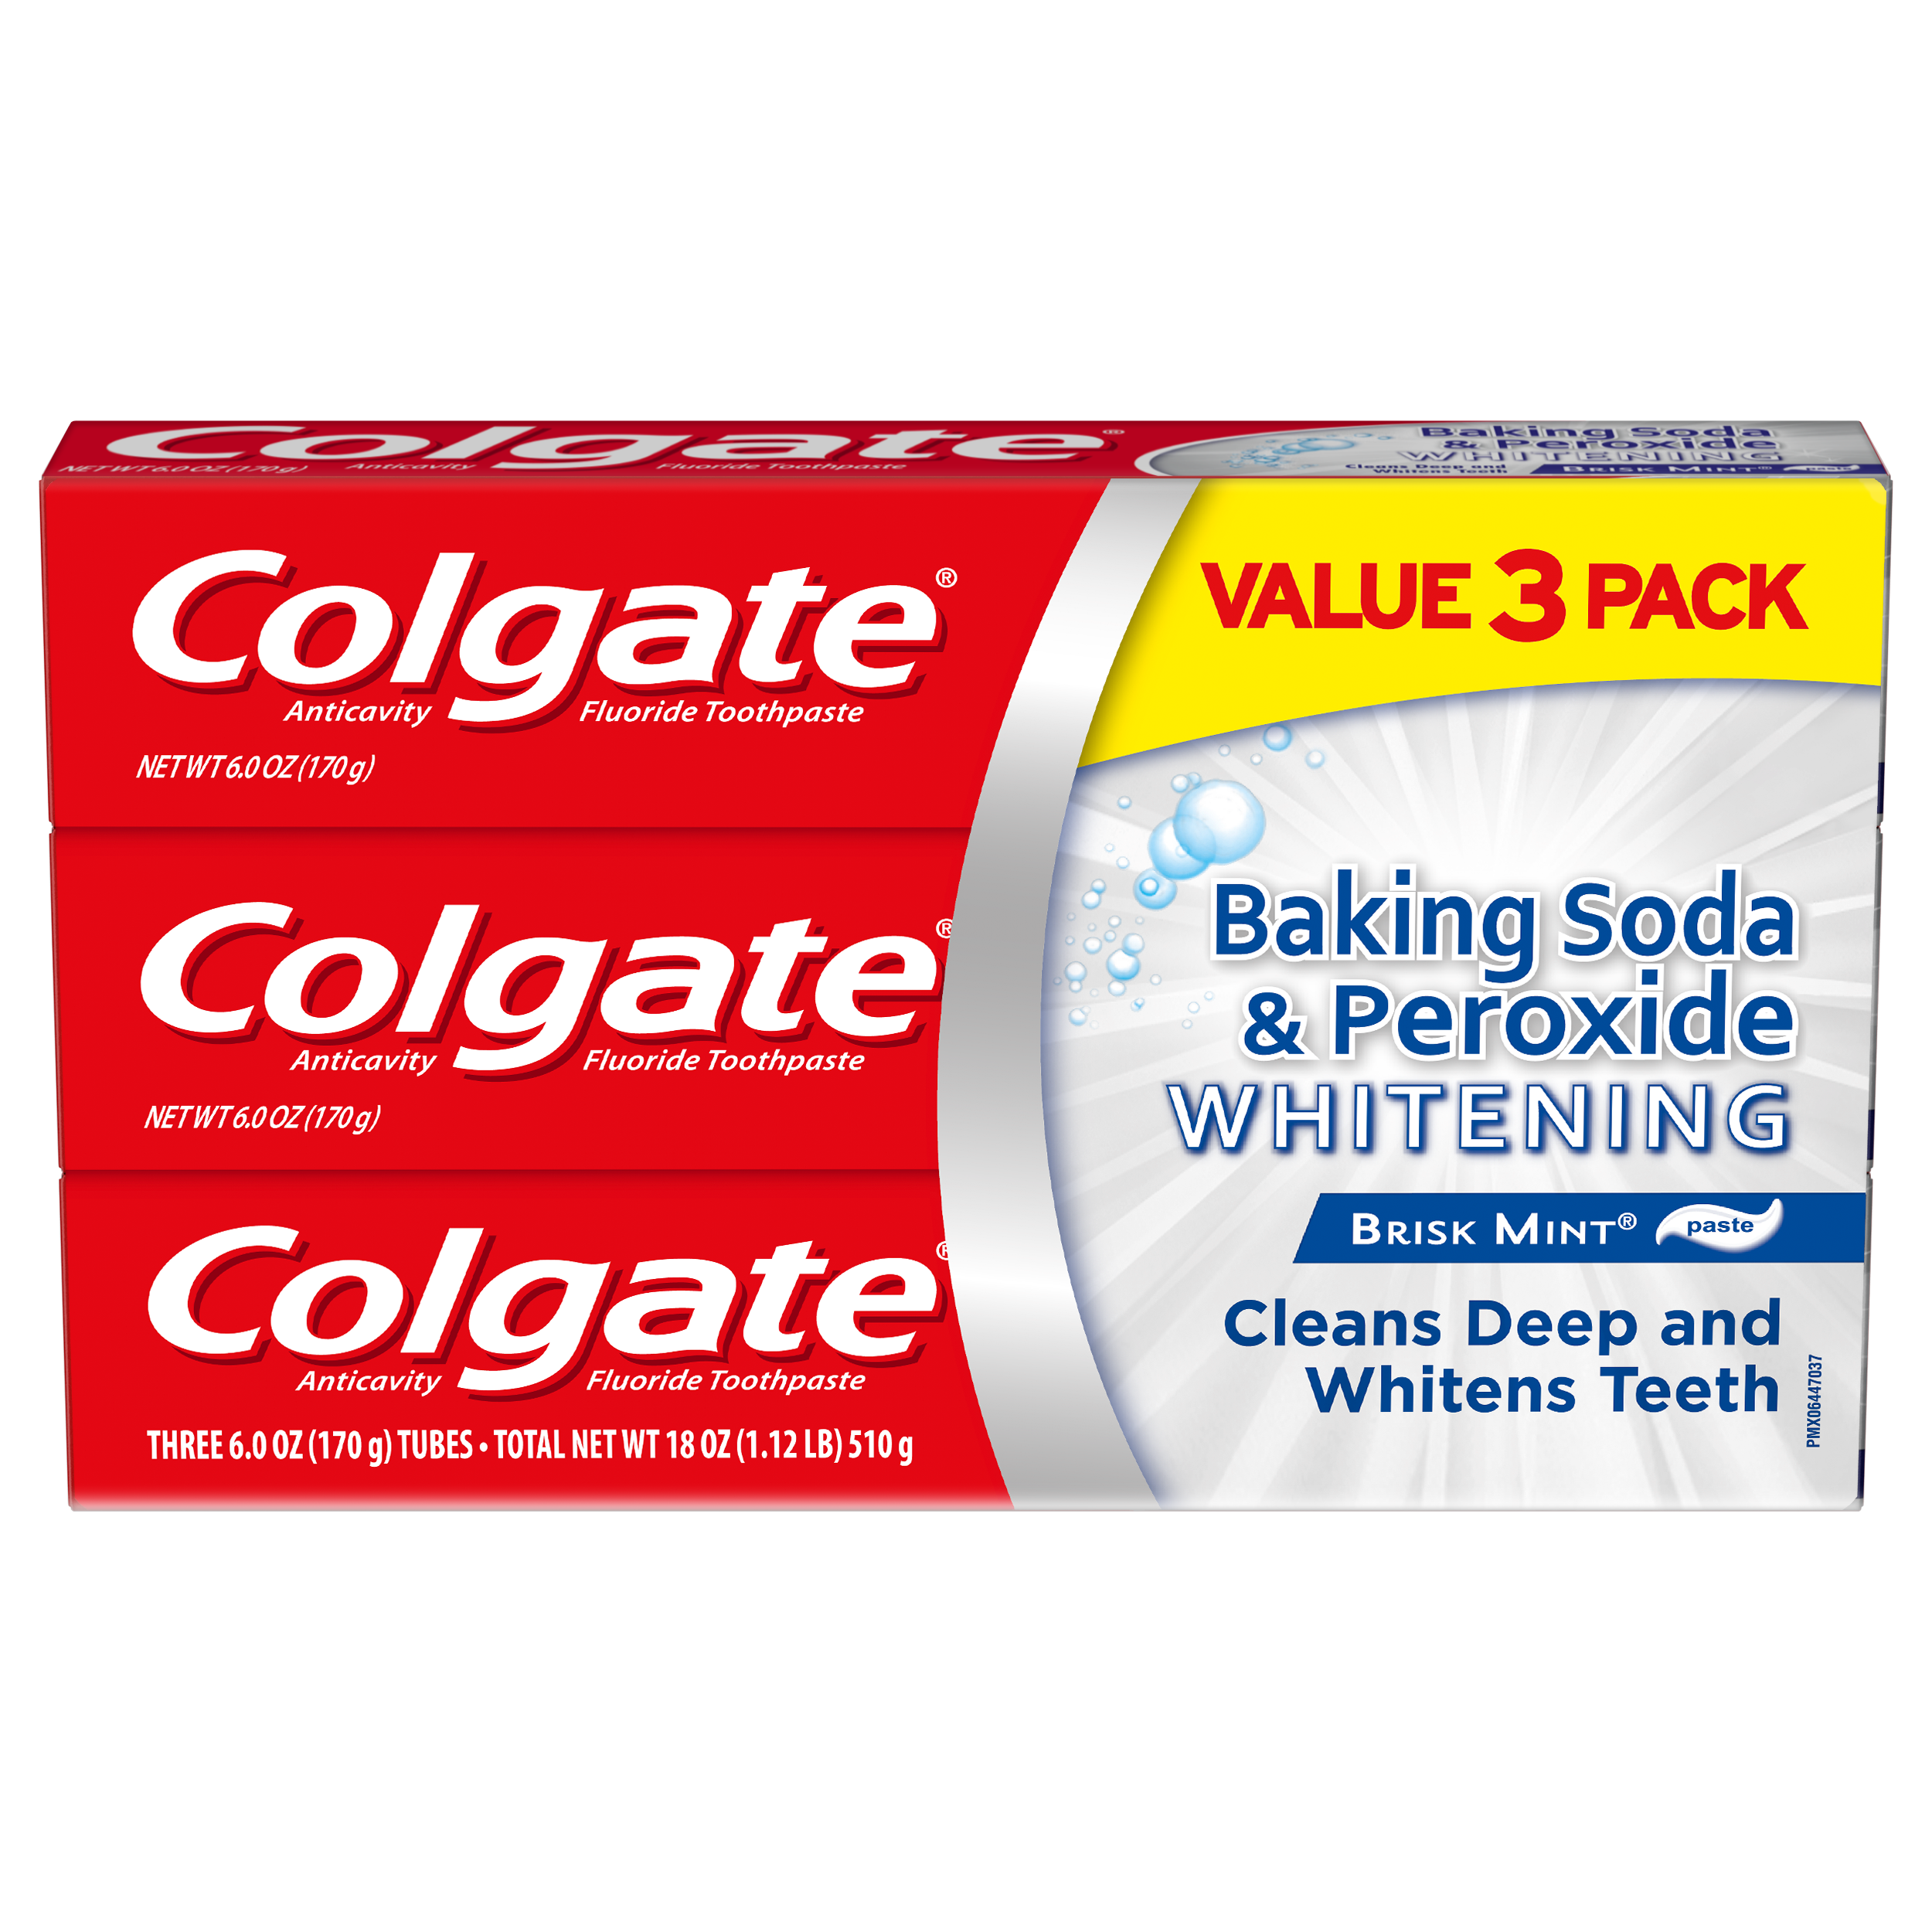 Colgate Baking Soda and Peroxide Whitening Toothpaste, Brisk Mint - 6 Ounce, 3 Pack